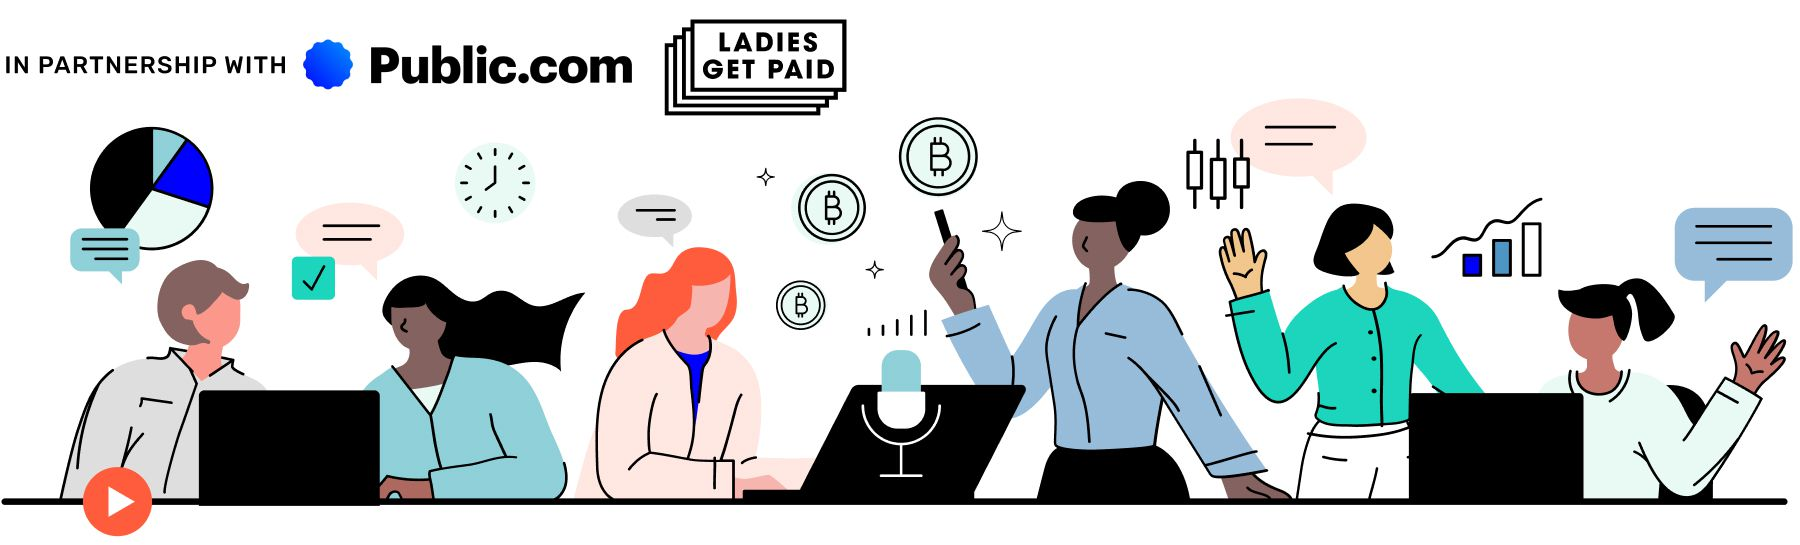 illustration of women talking, surrounded by images of charts, graphs, money symbols